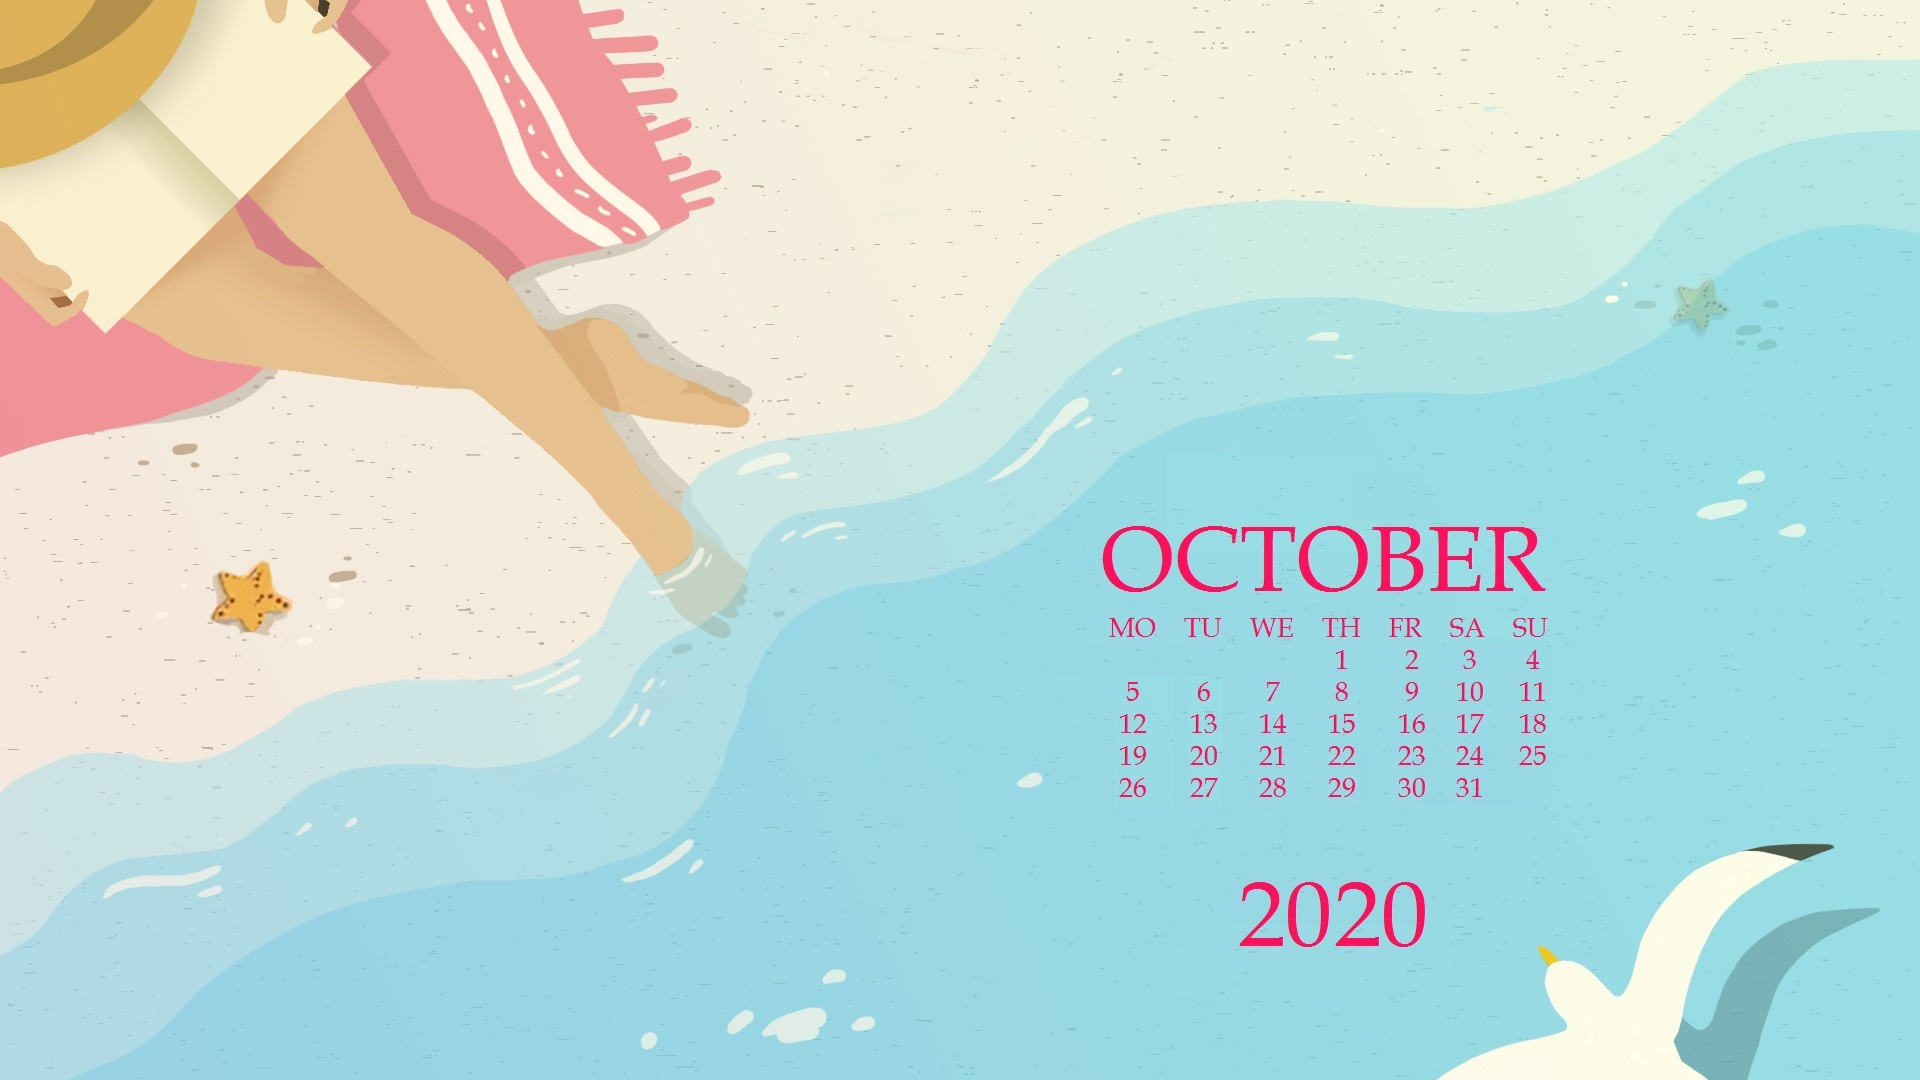 october wallpaper gif